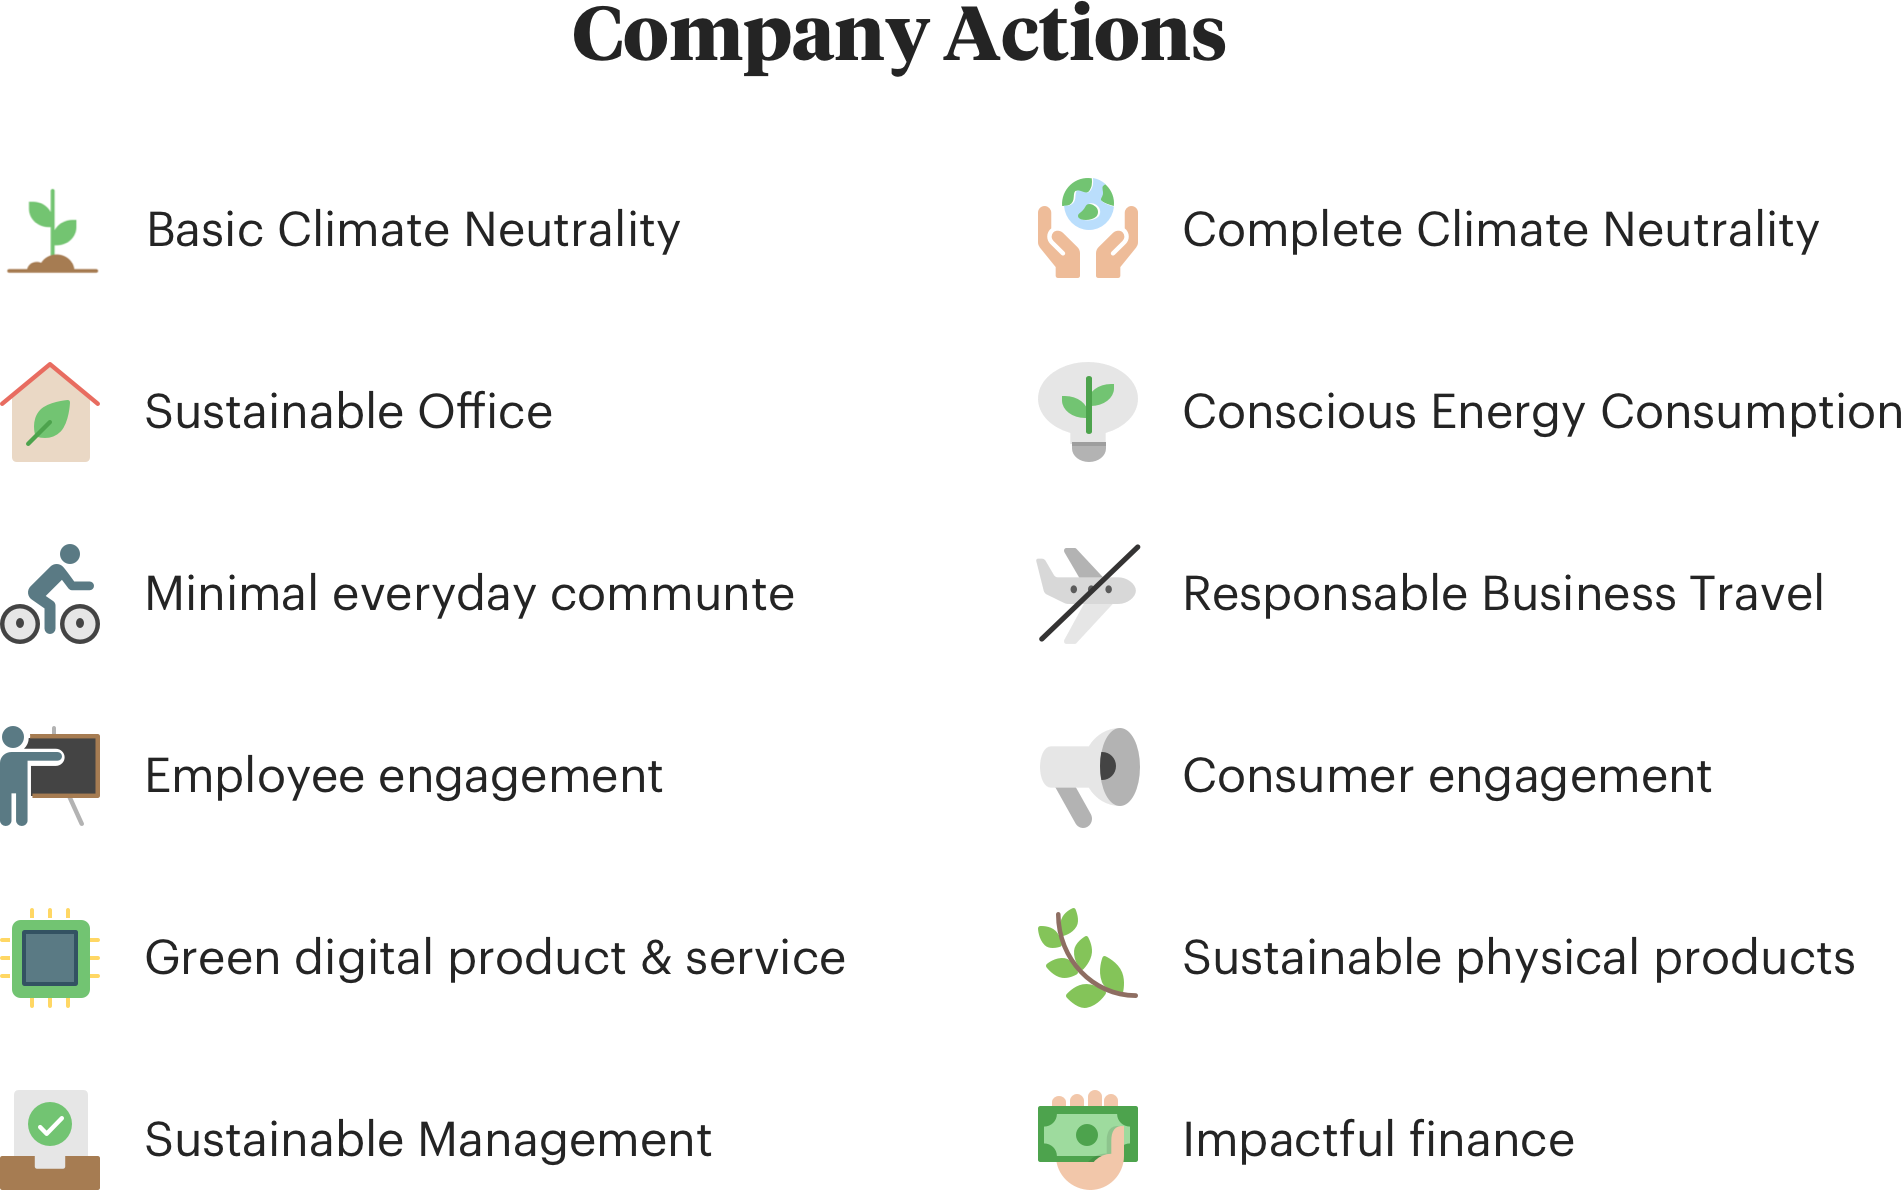 Corporate Climate Action